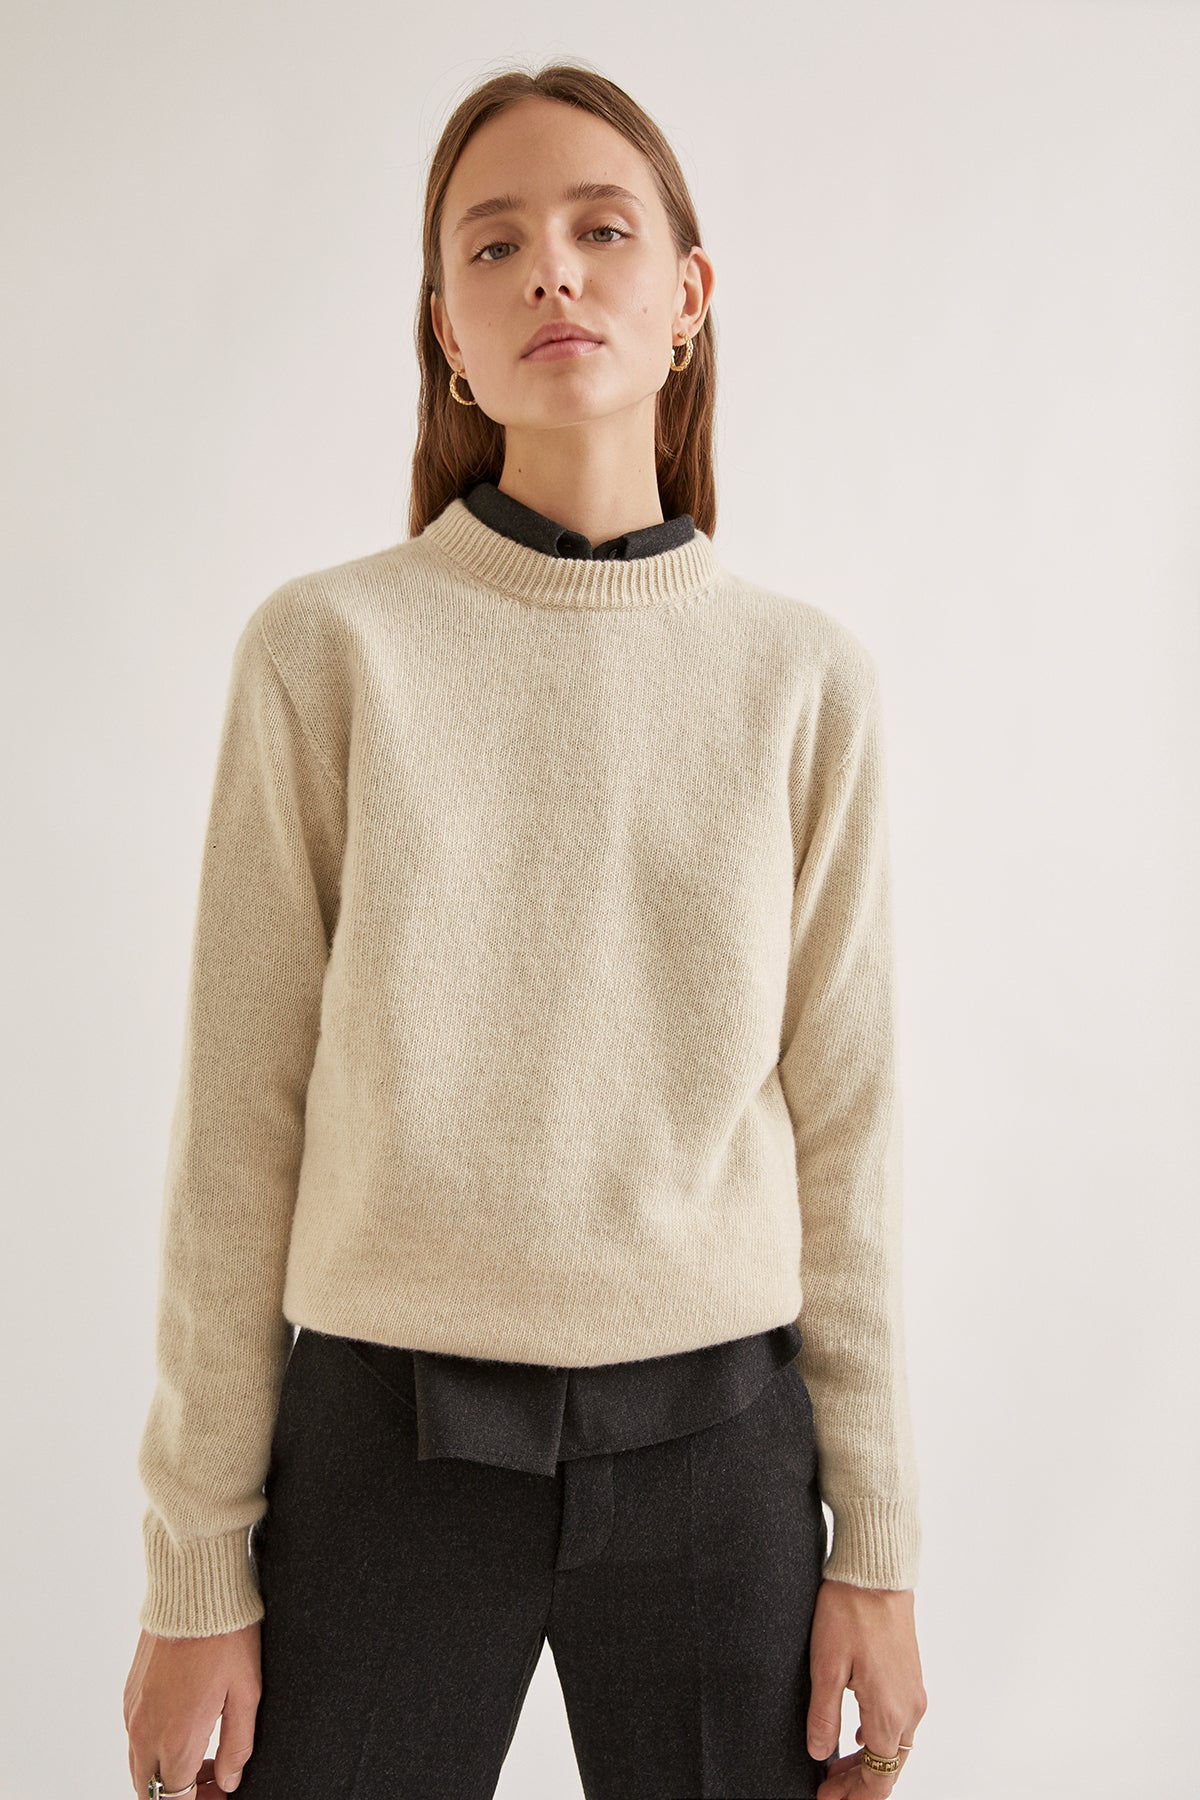 The Upcycled Cashmere Sweater - Cream